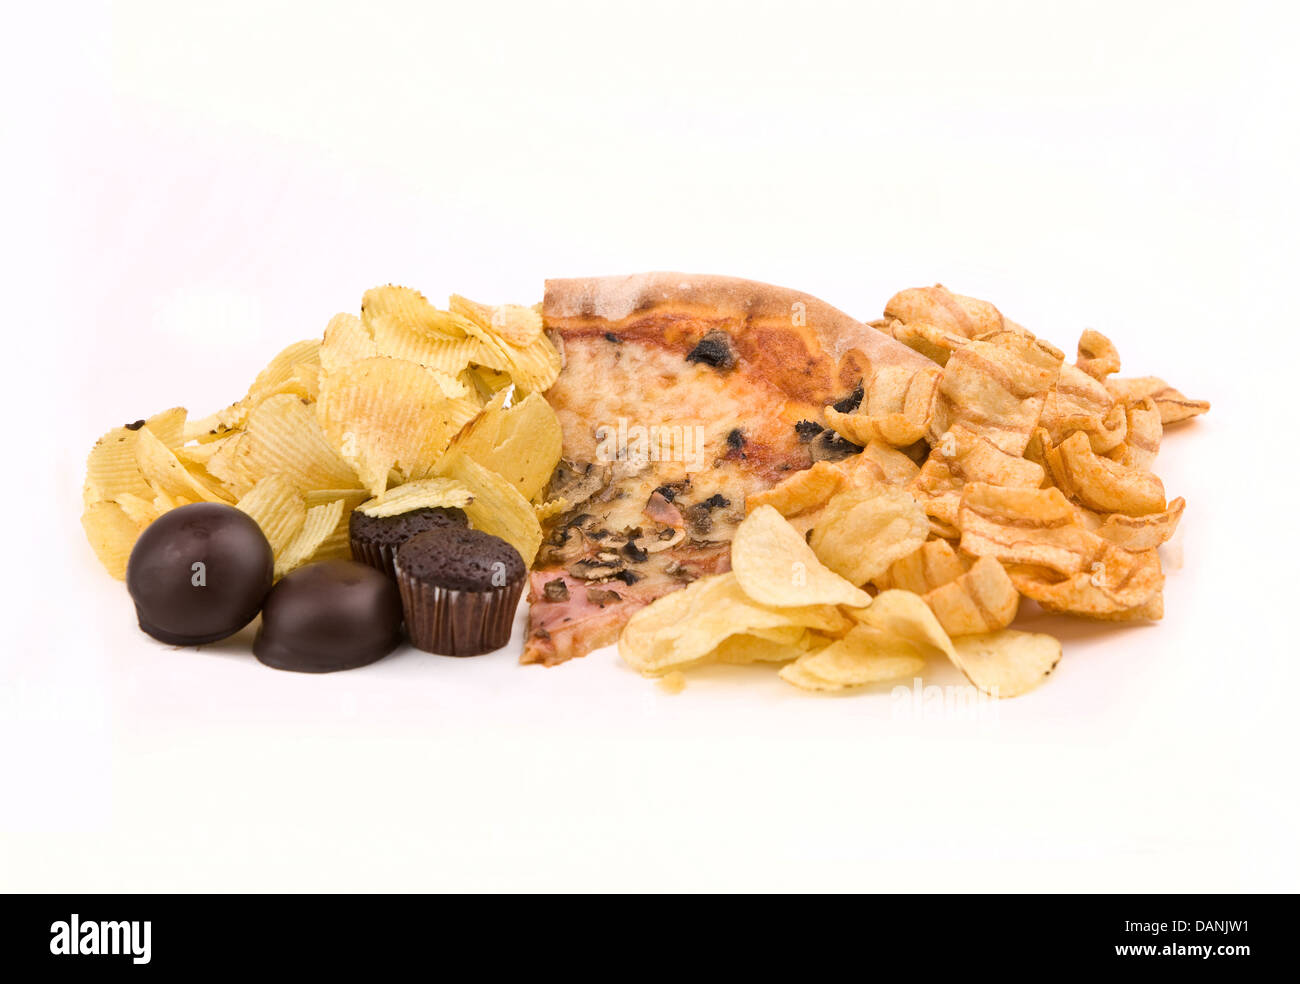 Junk food isolated on white - Stock Image